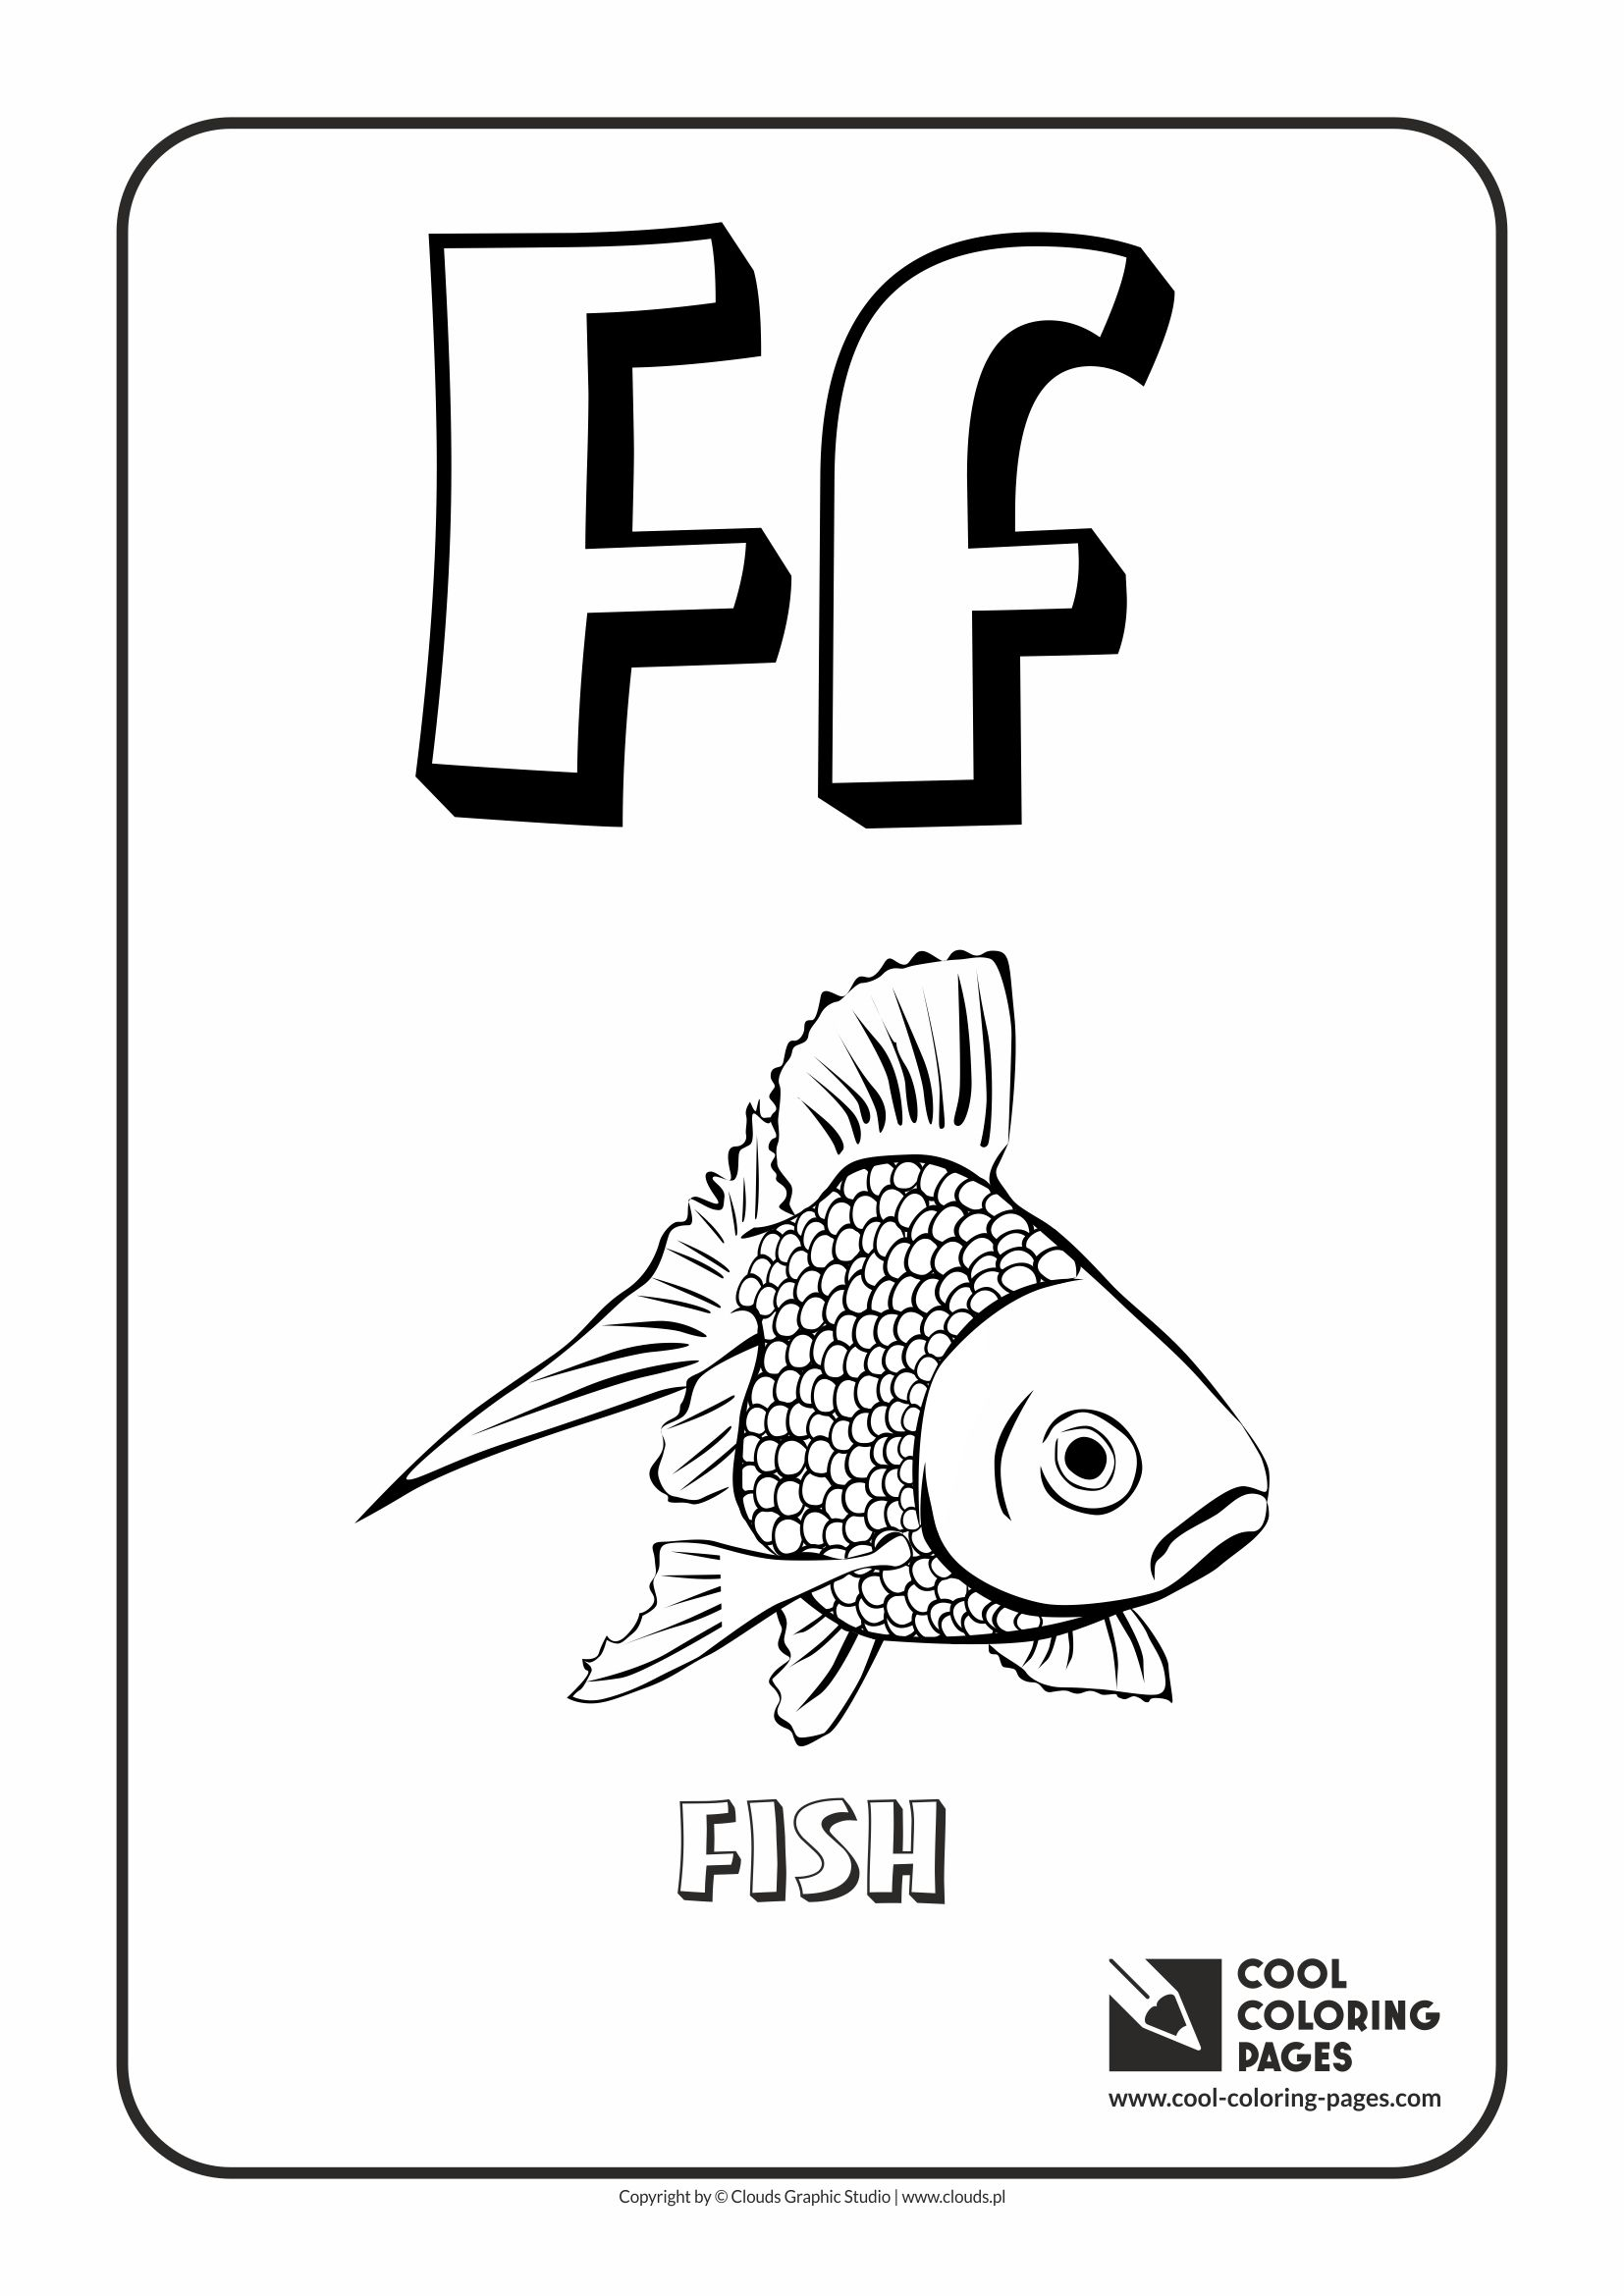 Famous 010 Editor Templates Big 1 Page Resume Format Free Download Solid 10 Best Resume Samples 10 Template Old 10 Tips For Good Resume Writing Blue10 Tips To Write A Good Resume Letter F Is For Fish Coloring Page | Free Printable Coloring Pages